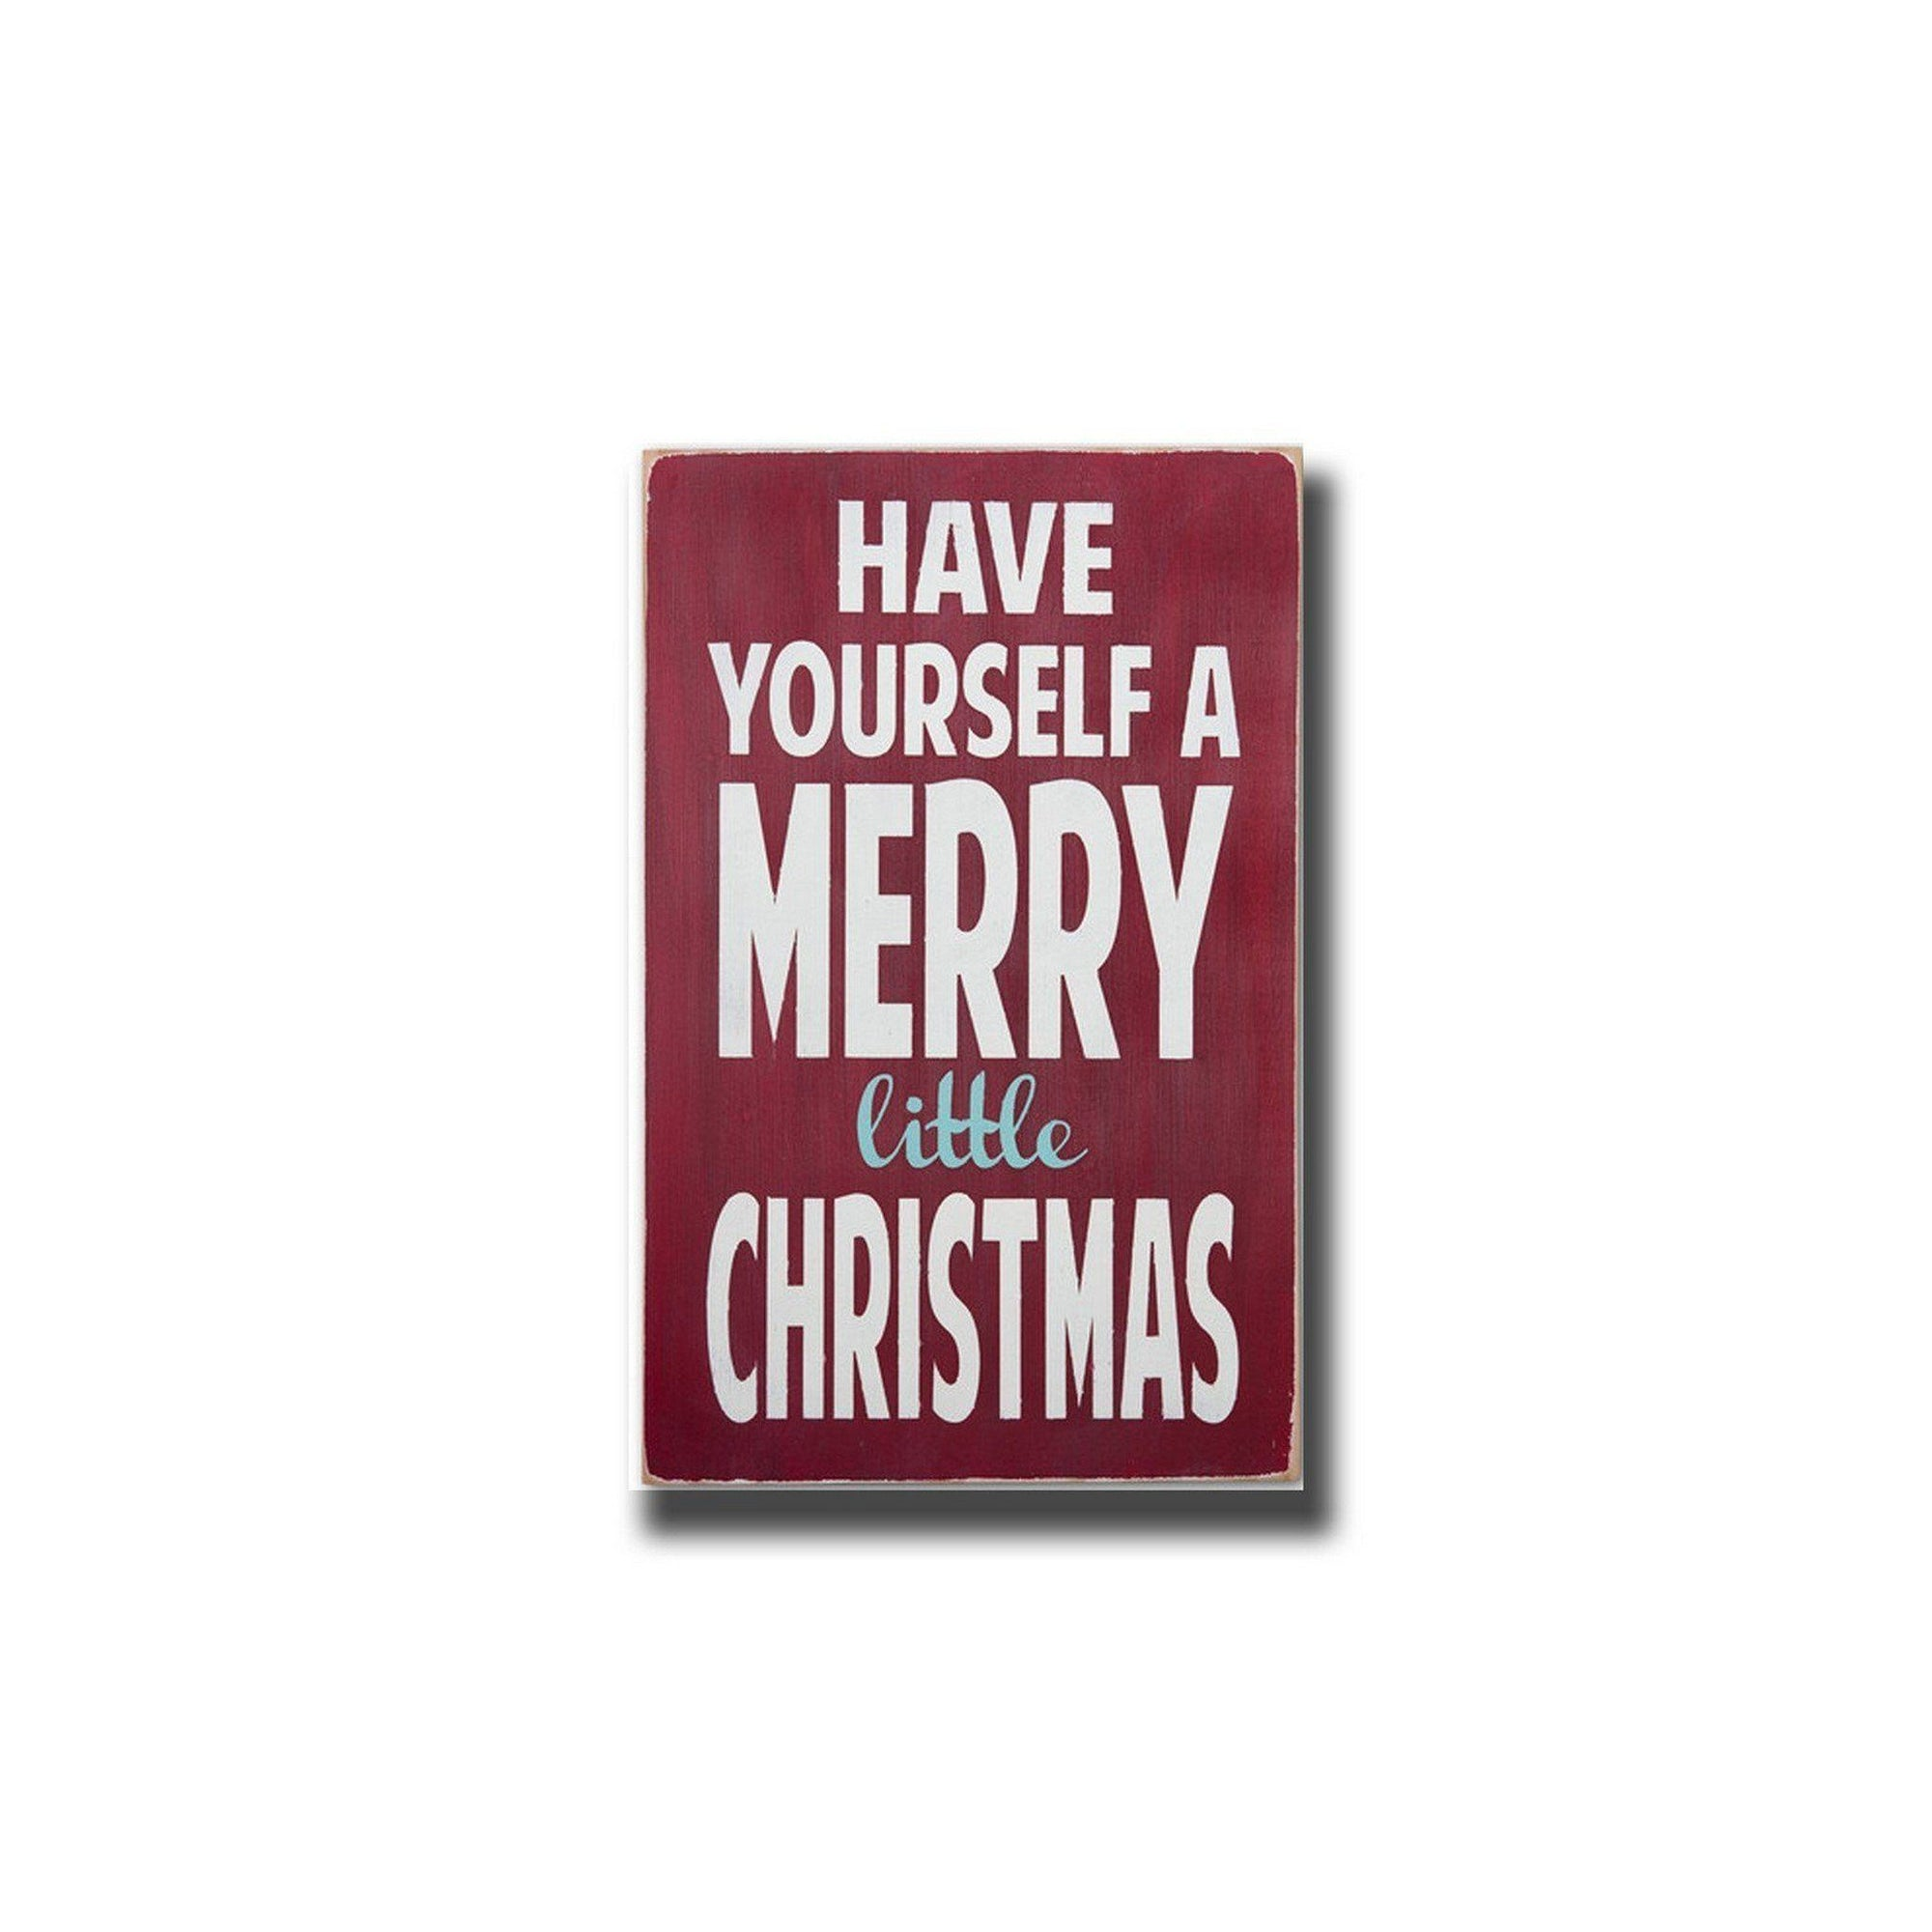 Have Yourself A Merry Little Christmas Sign.Have Yourself A Merry Little Christmas